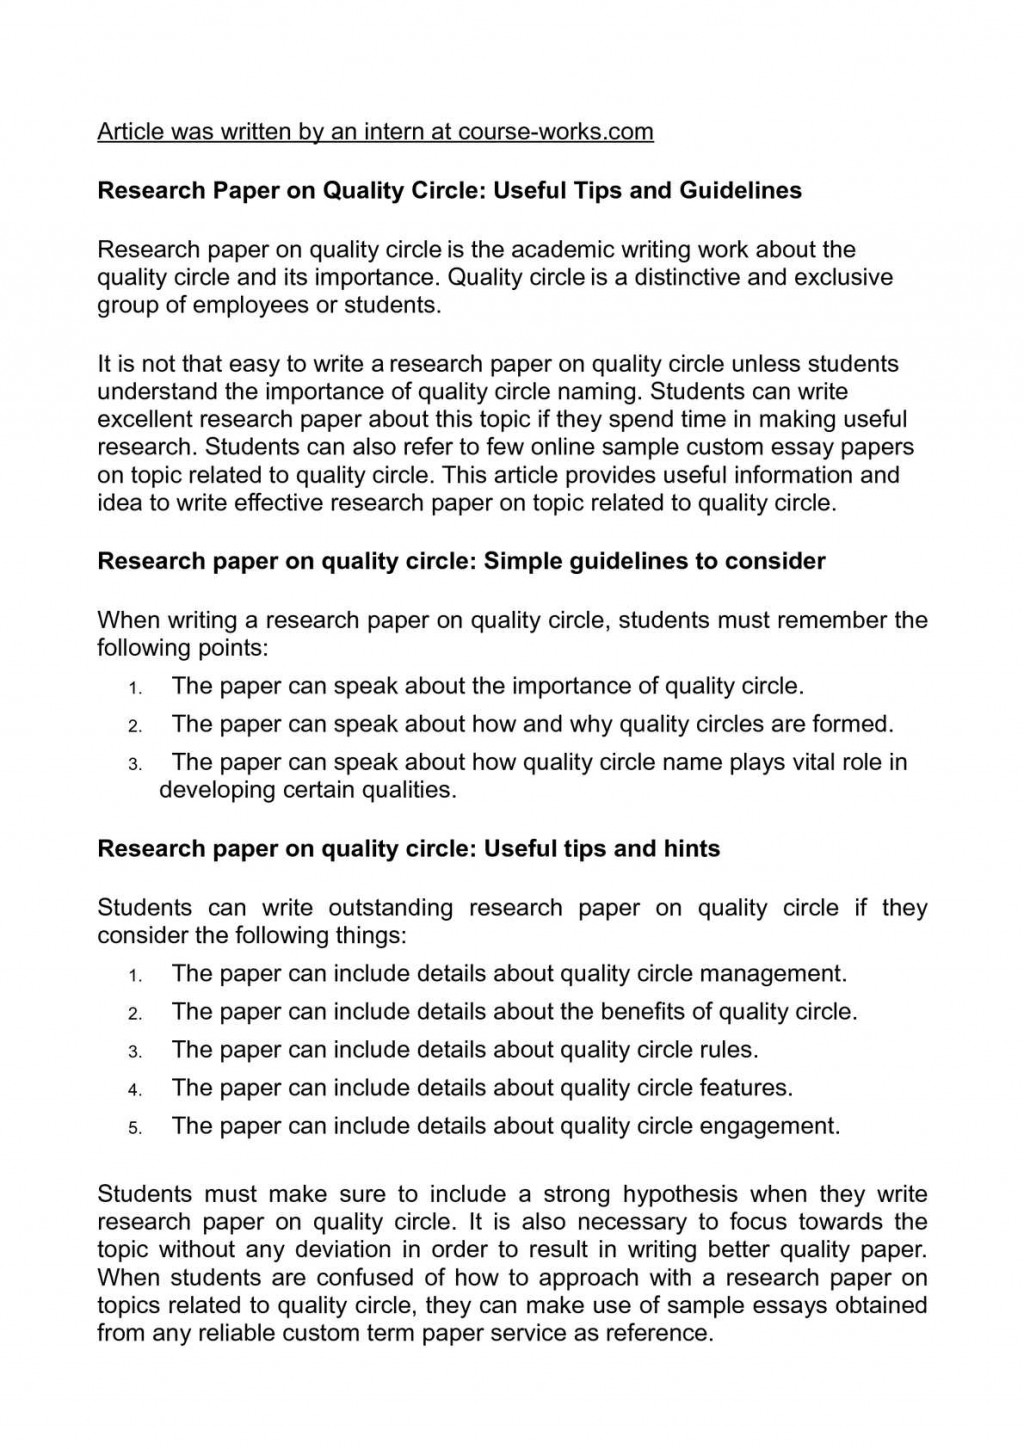 007 P1 Topics To Write Research Paper Beautiful On A Persuasive Computer Science Large